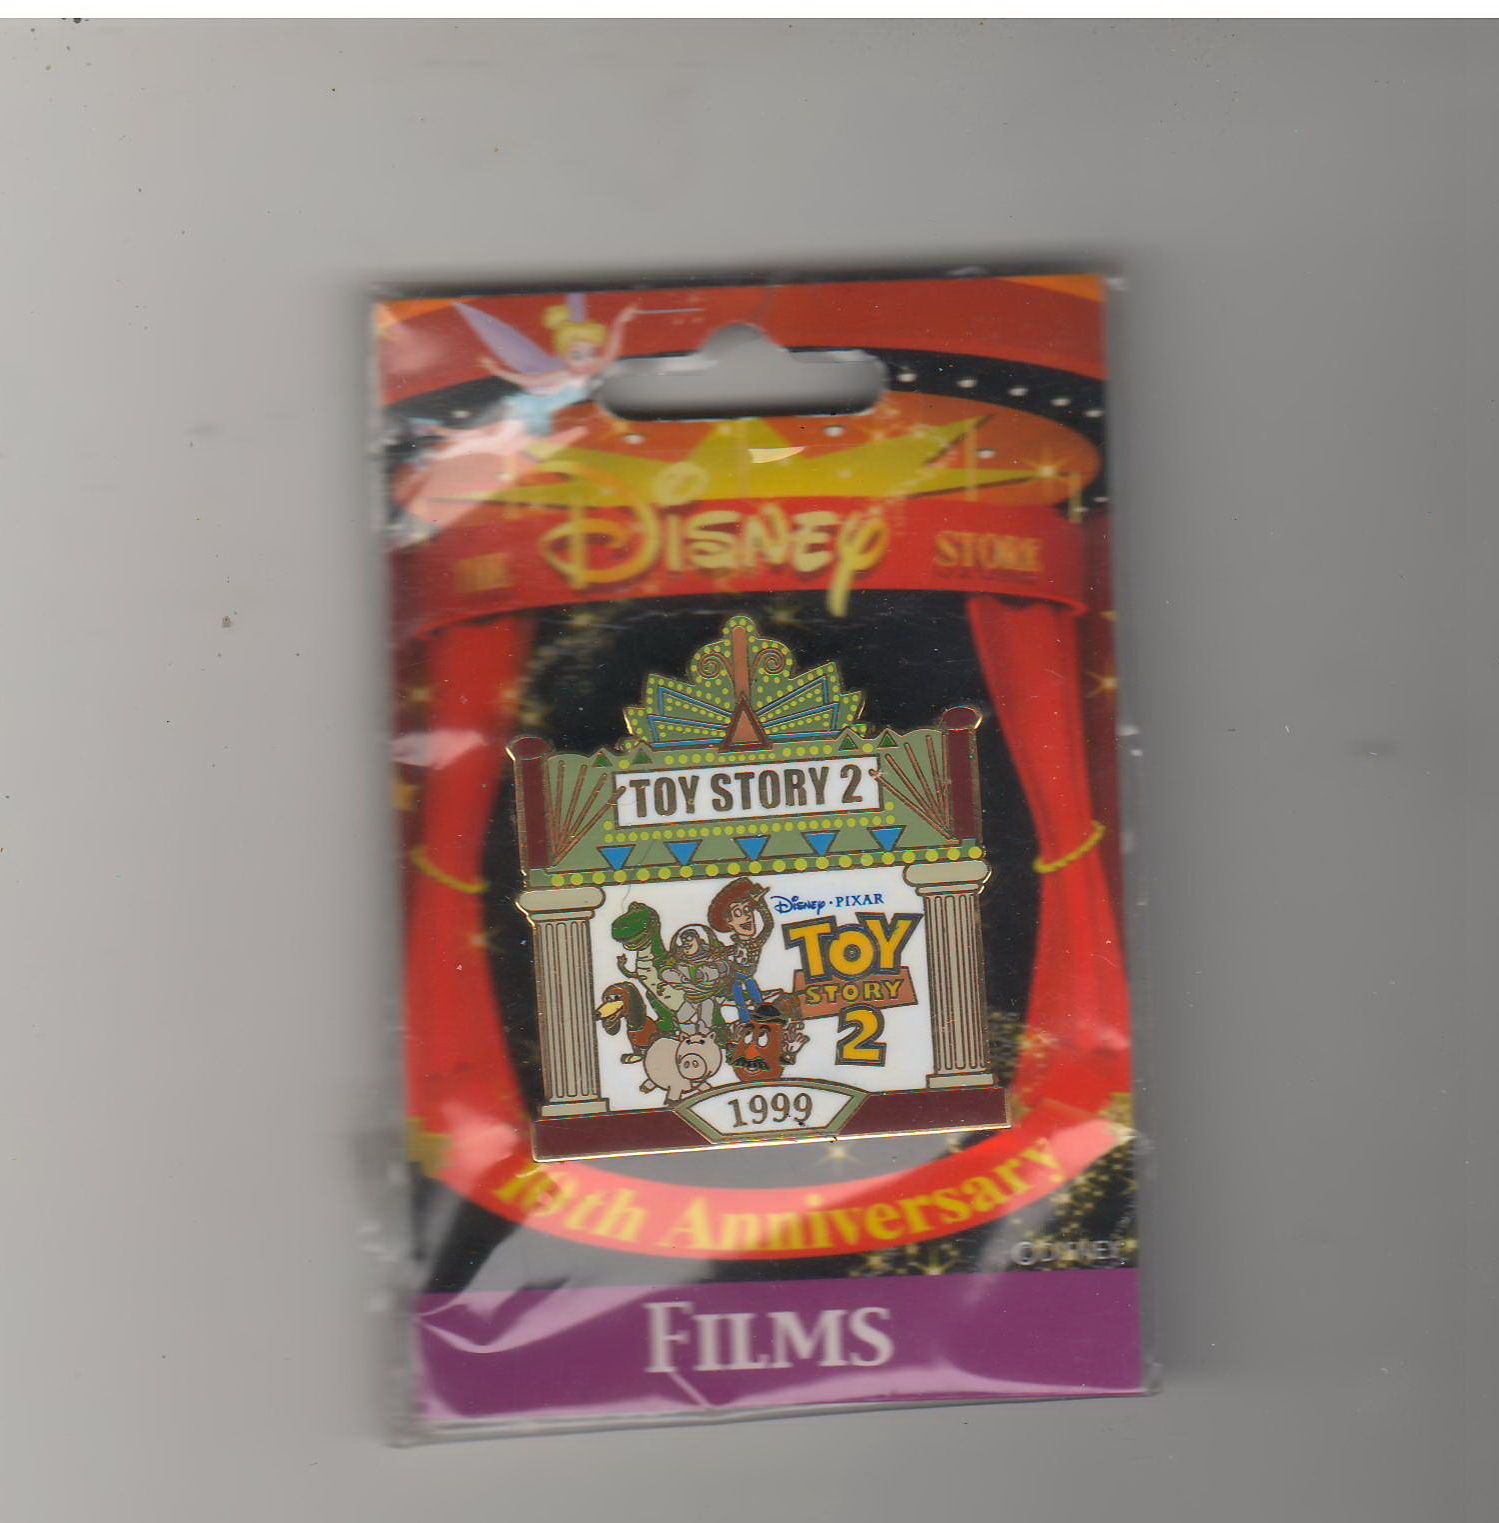 JDS 10th Anniversary Toy Story 2 Authentic  japan Disney On CArd pin - $99.99